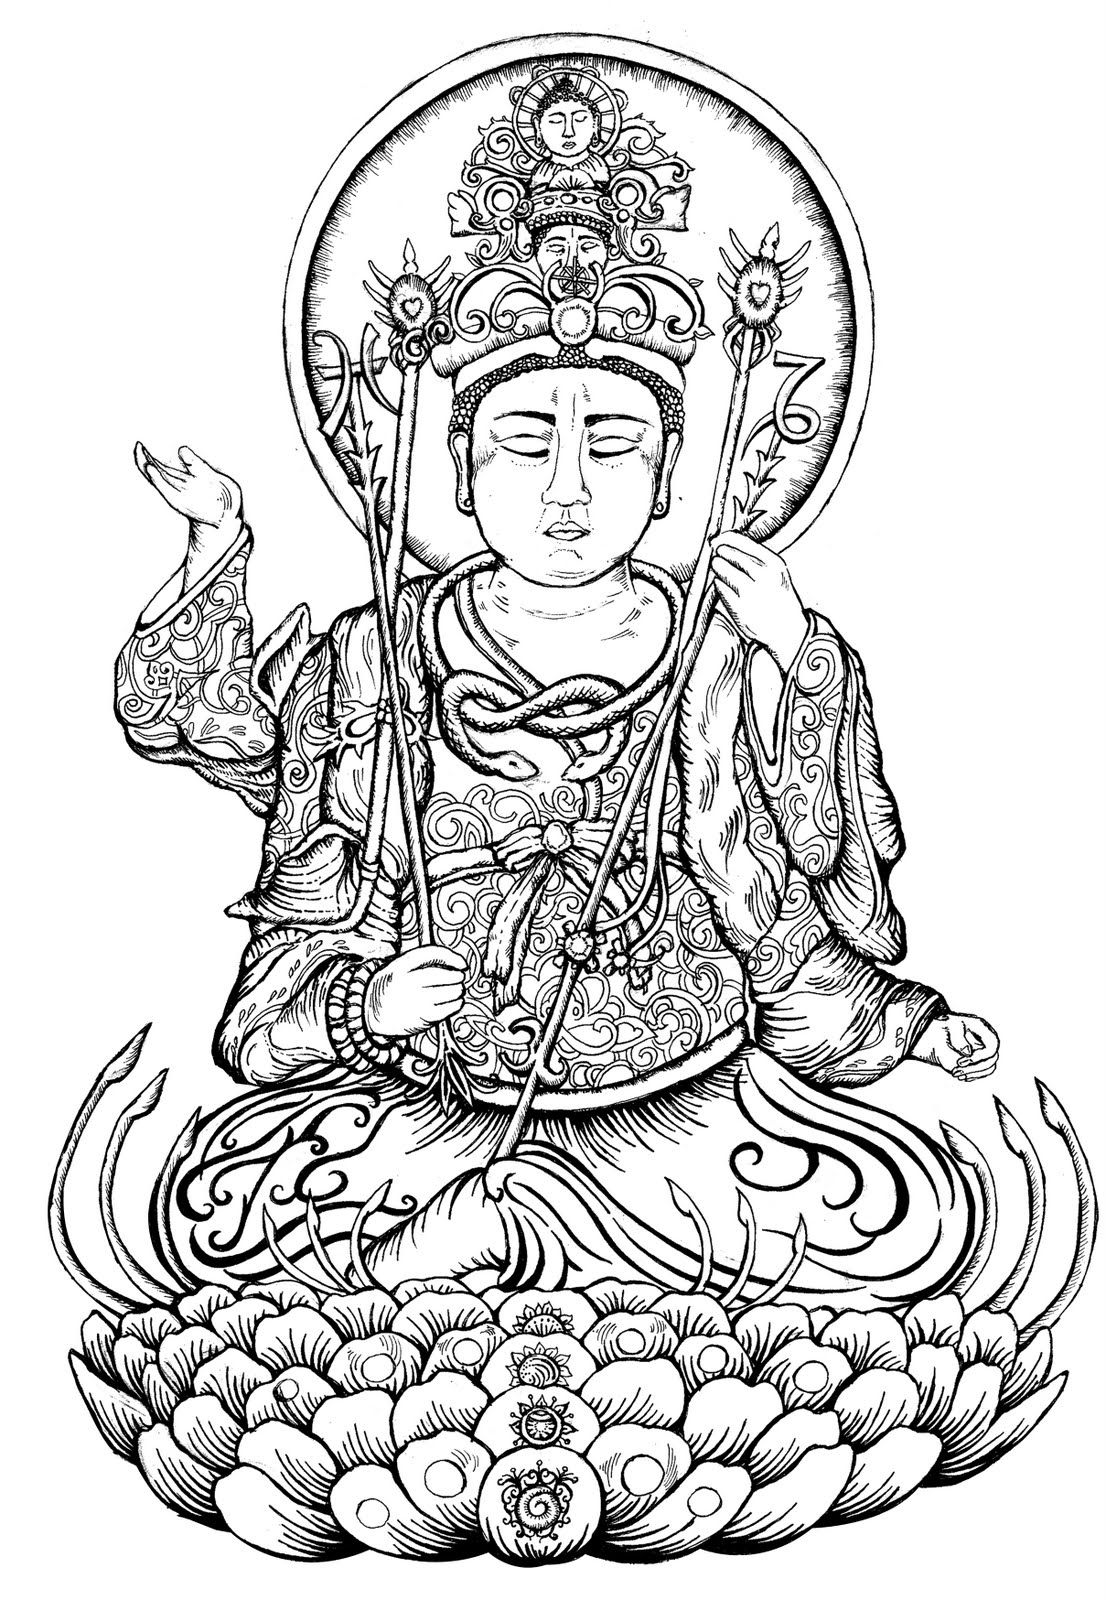 coloring pages buddah - photo#27